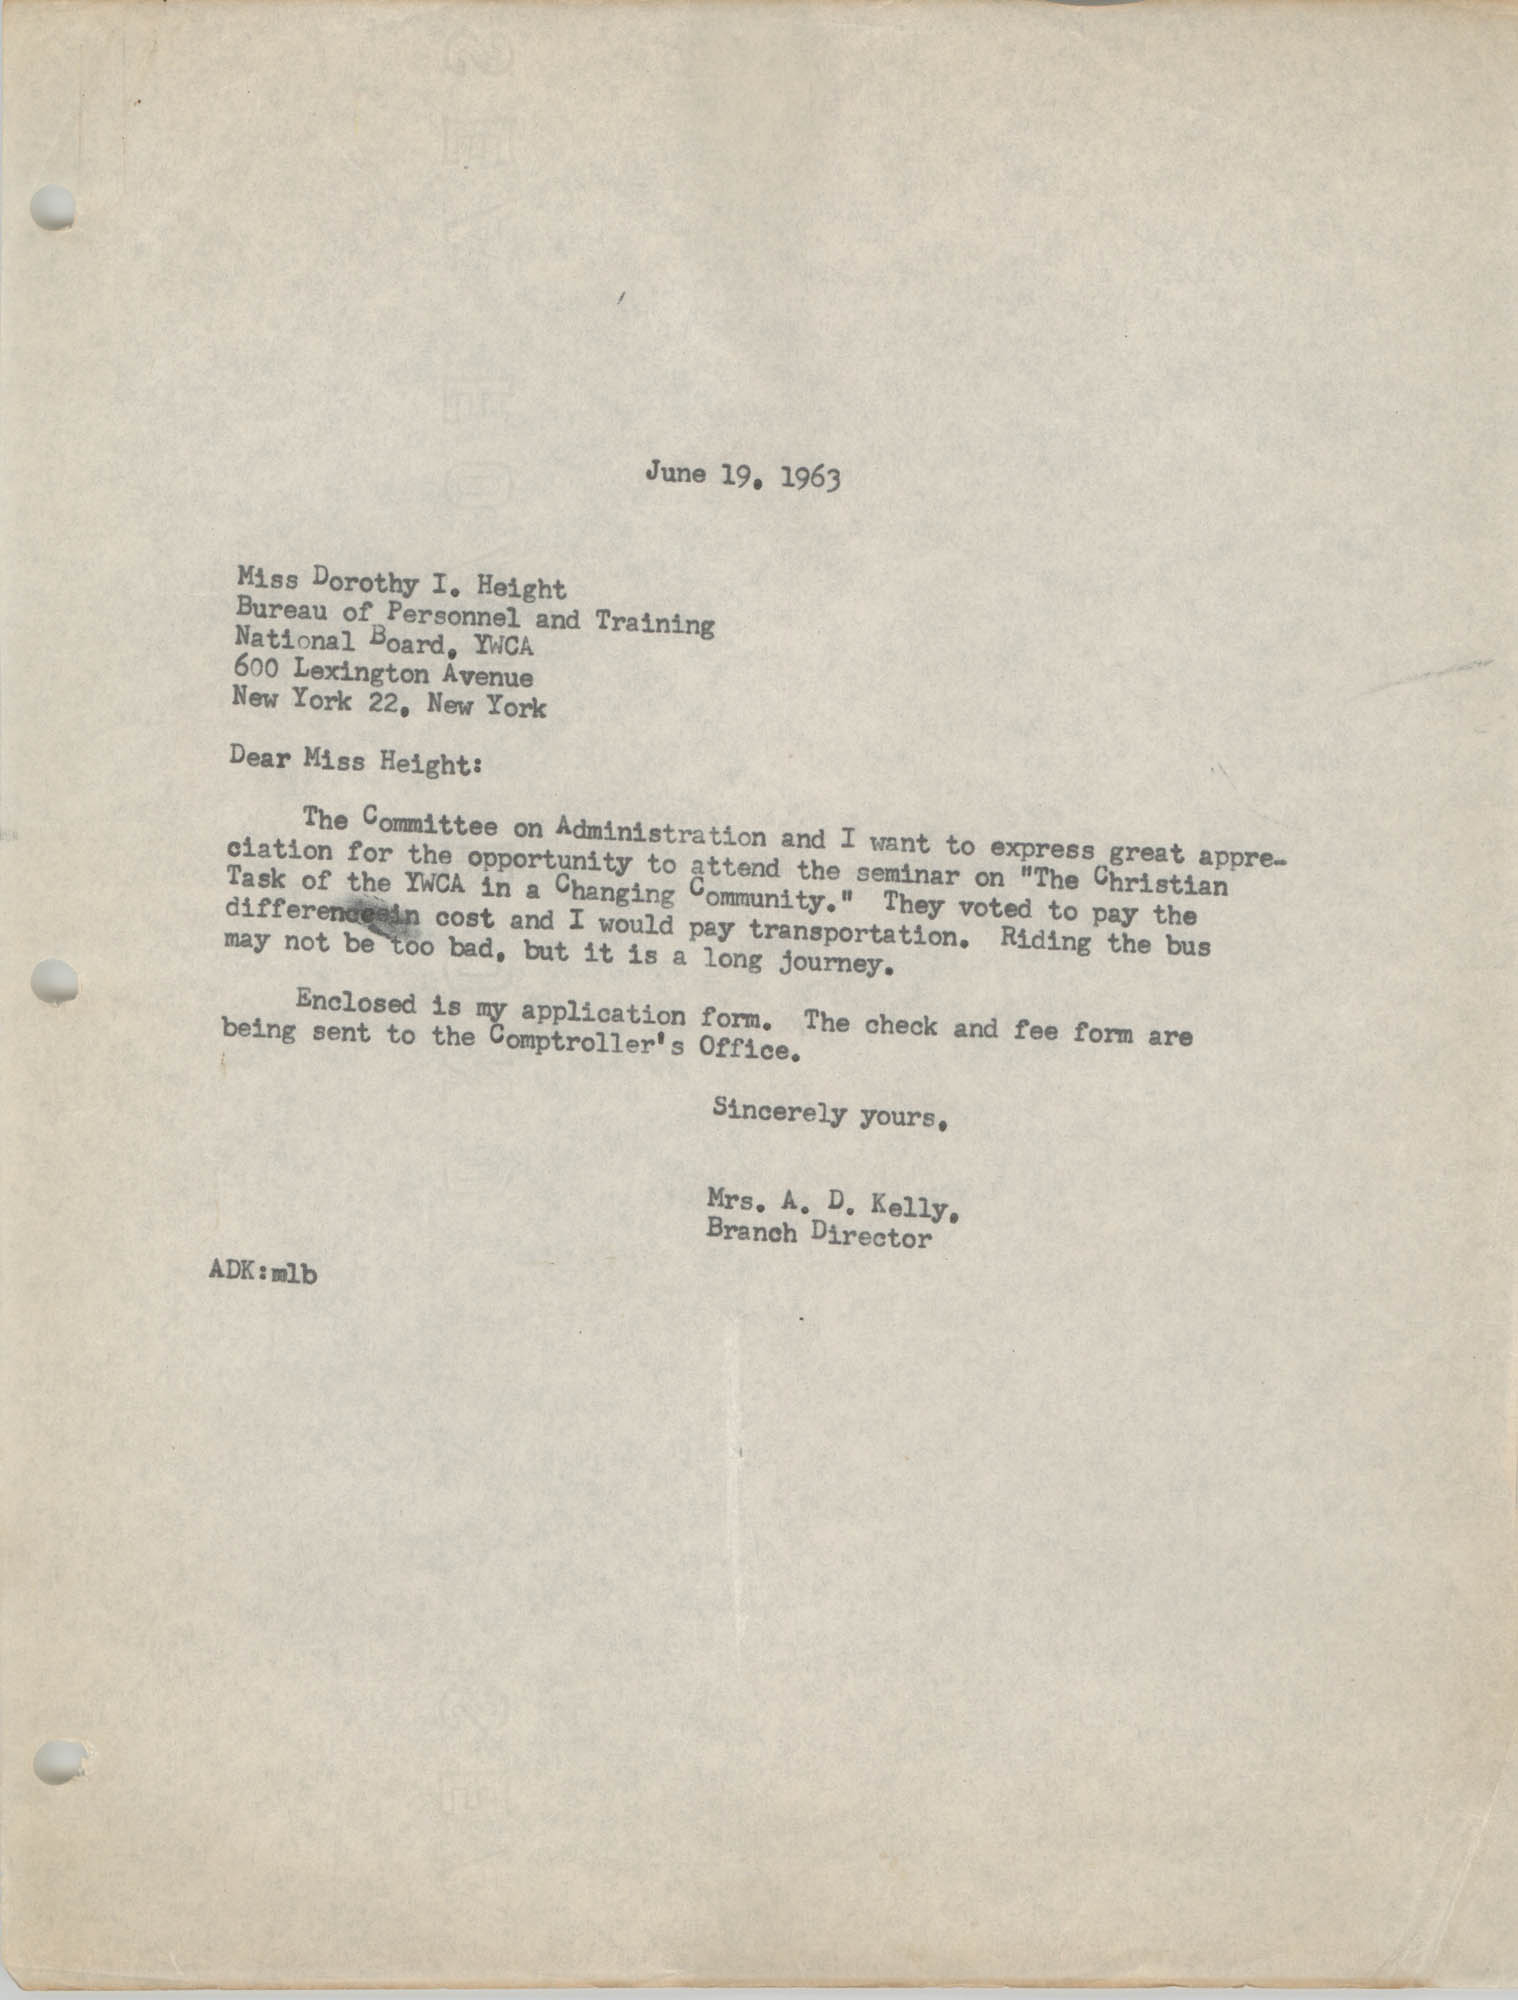 Letter from Anna D. Kelly to Dorothy I. Height, June 19, 1963